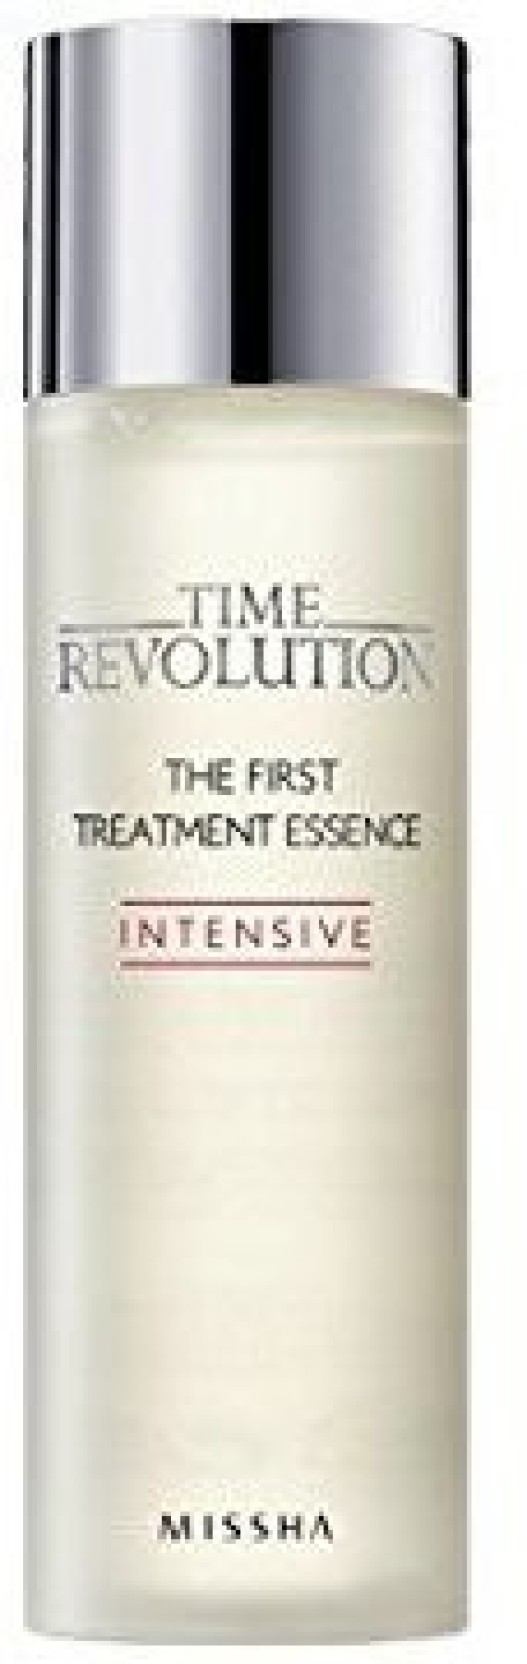 Missha Time Revolution The First Treatment Essence Price In India On Offer